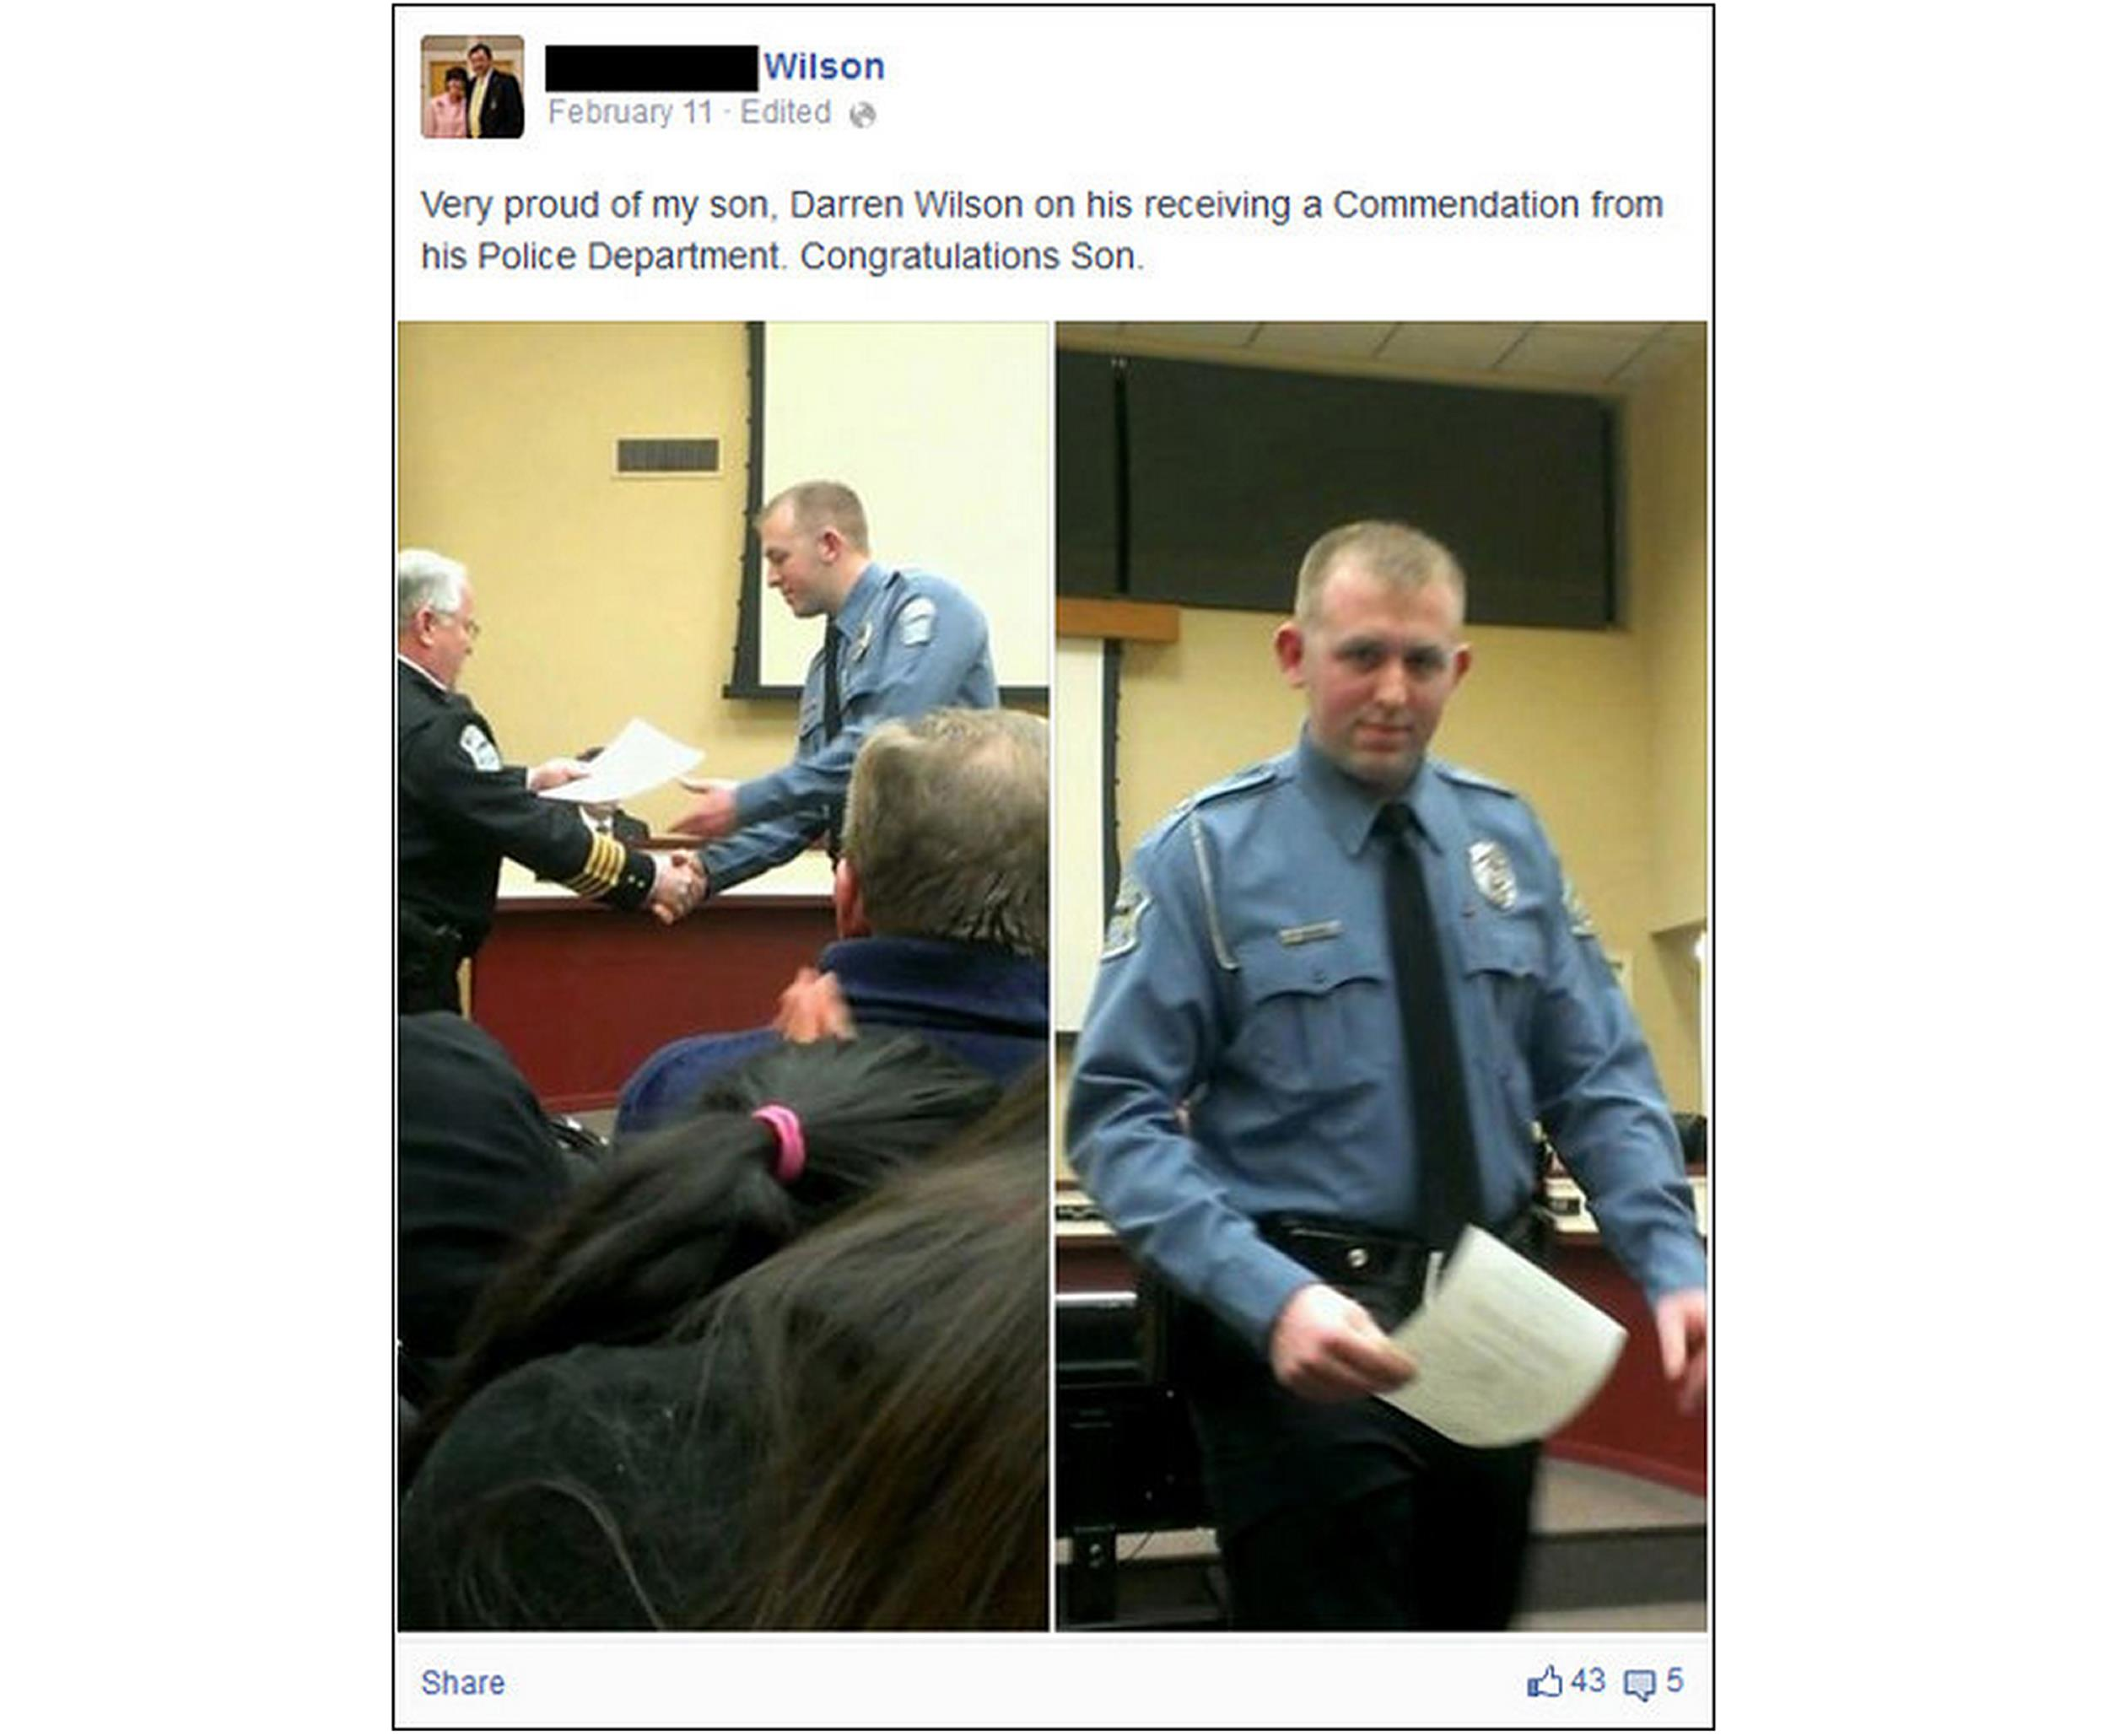 Photos posted to Facebook by Darren Wilson's father show the Ferguson police officer receiving a commendation award from the Police Dept.